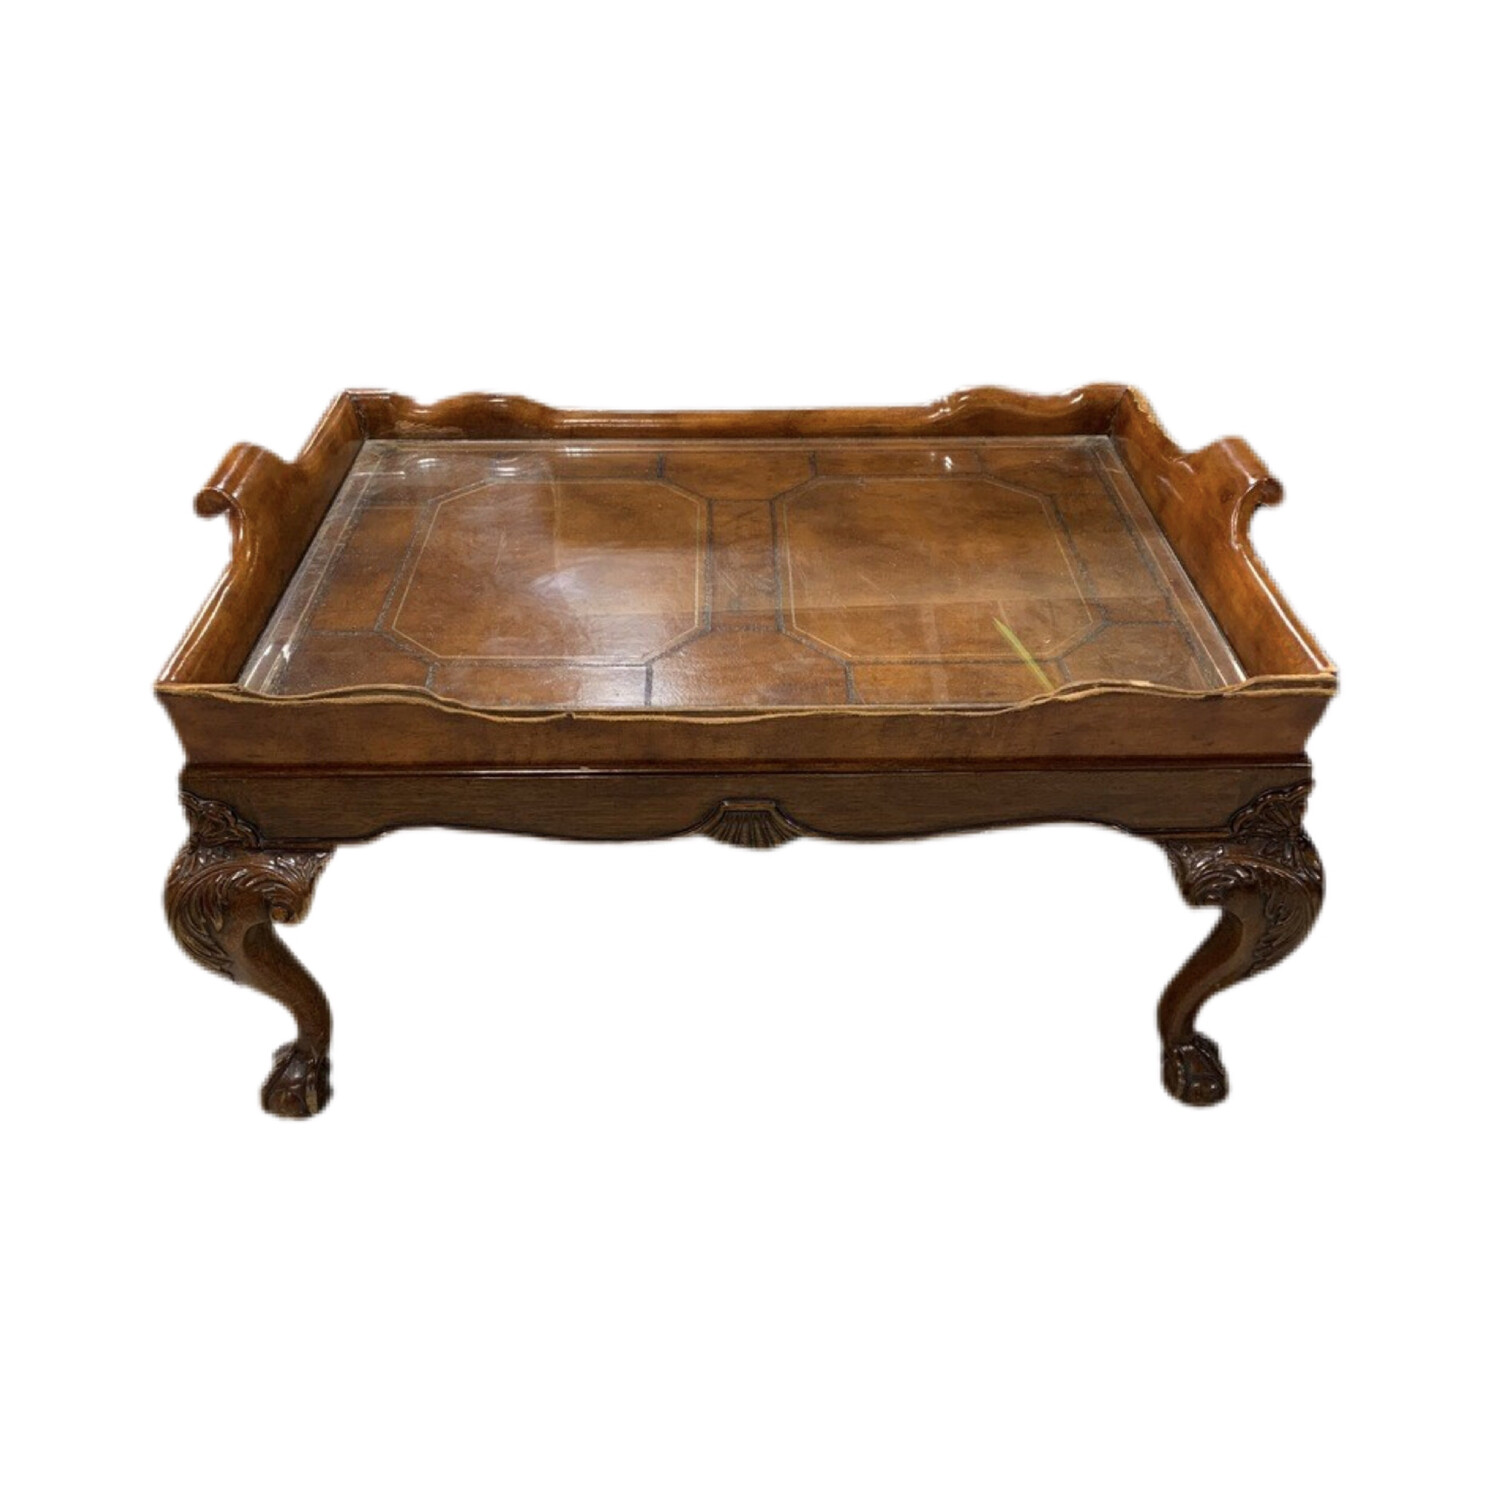 Wooden Center Coffee Table With Glass